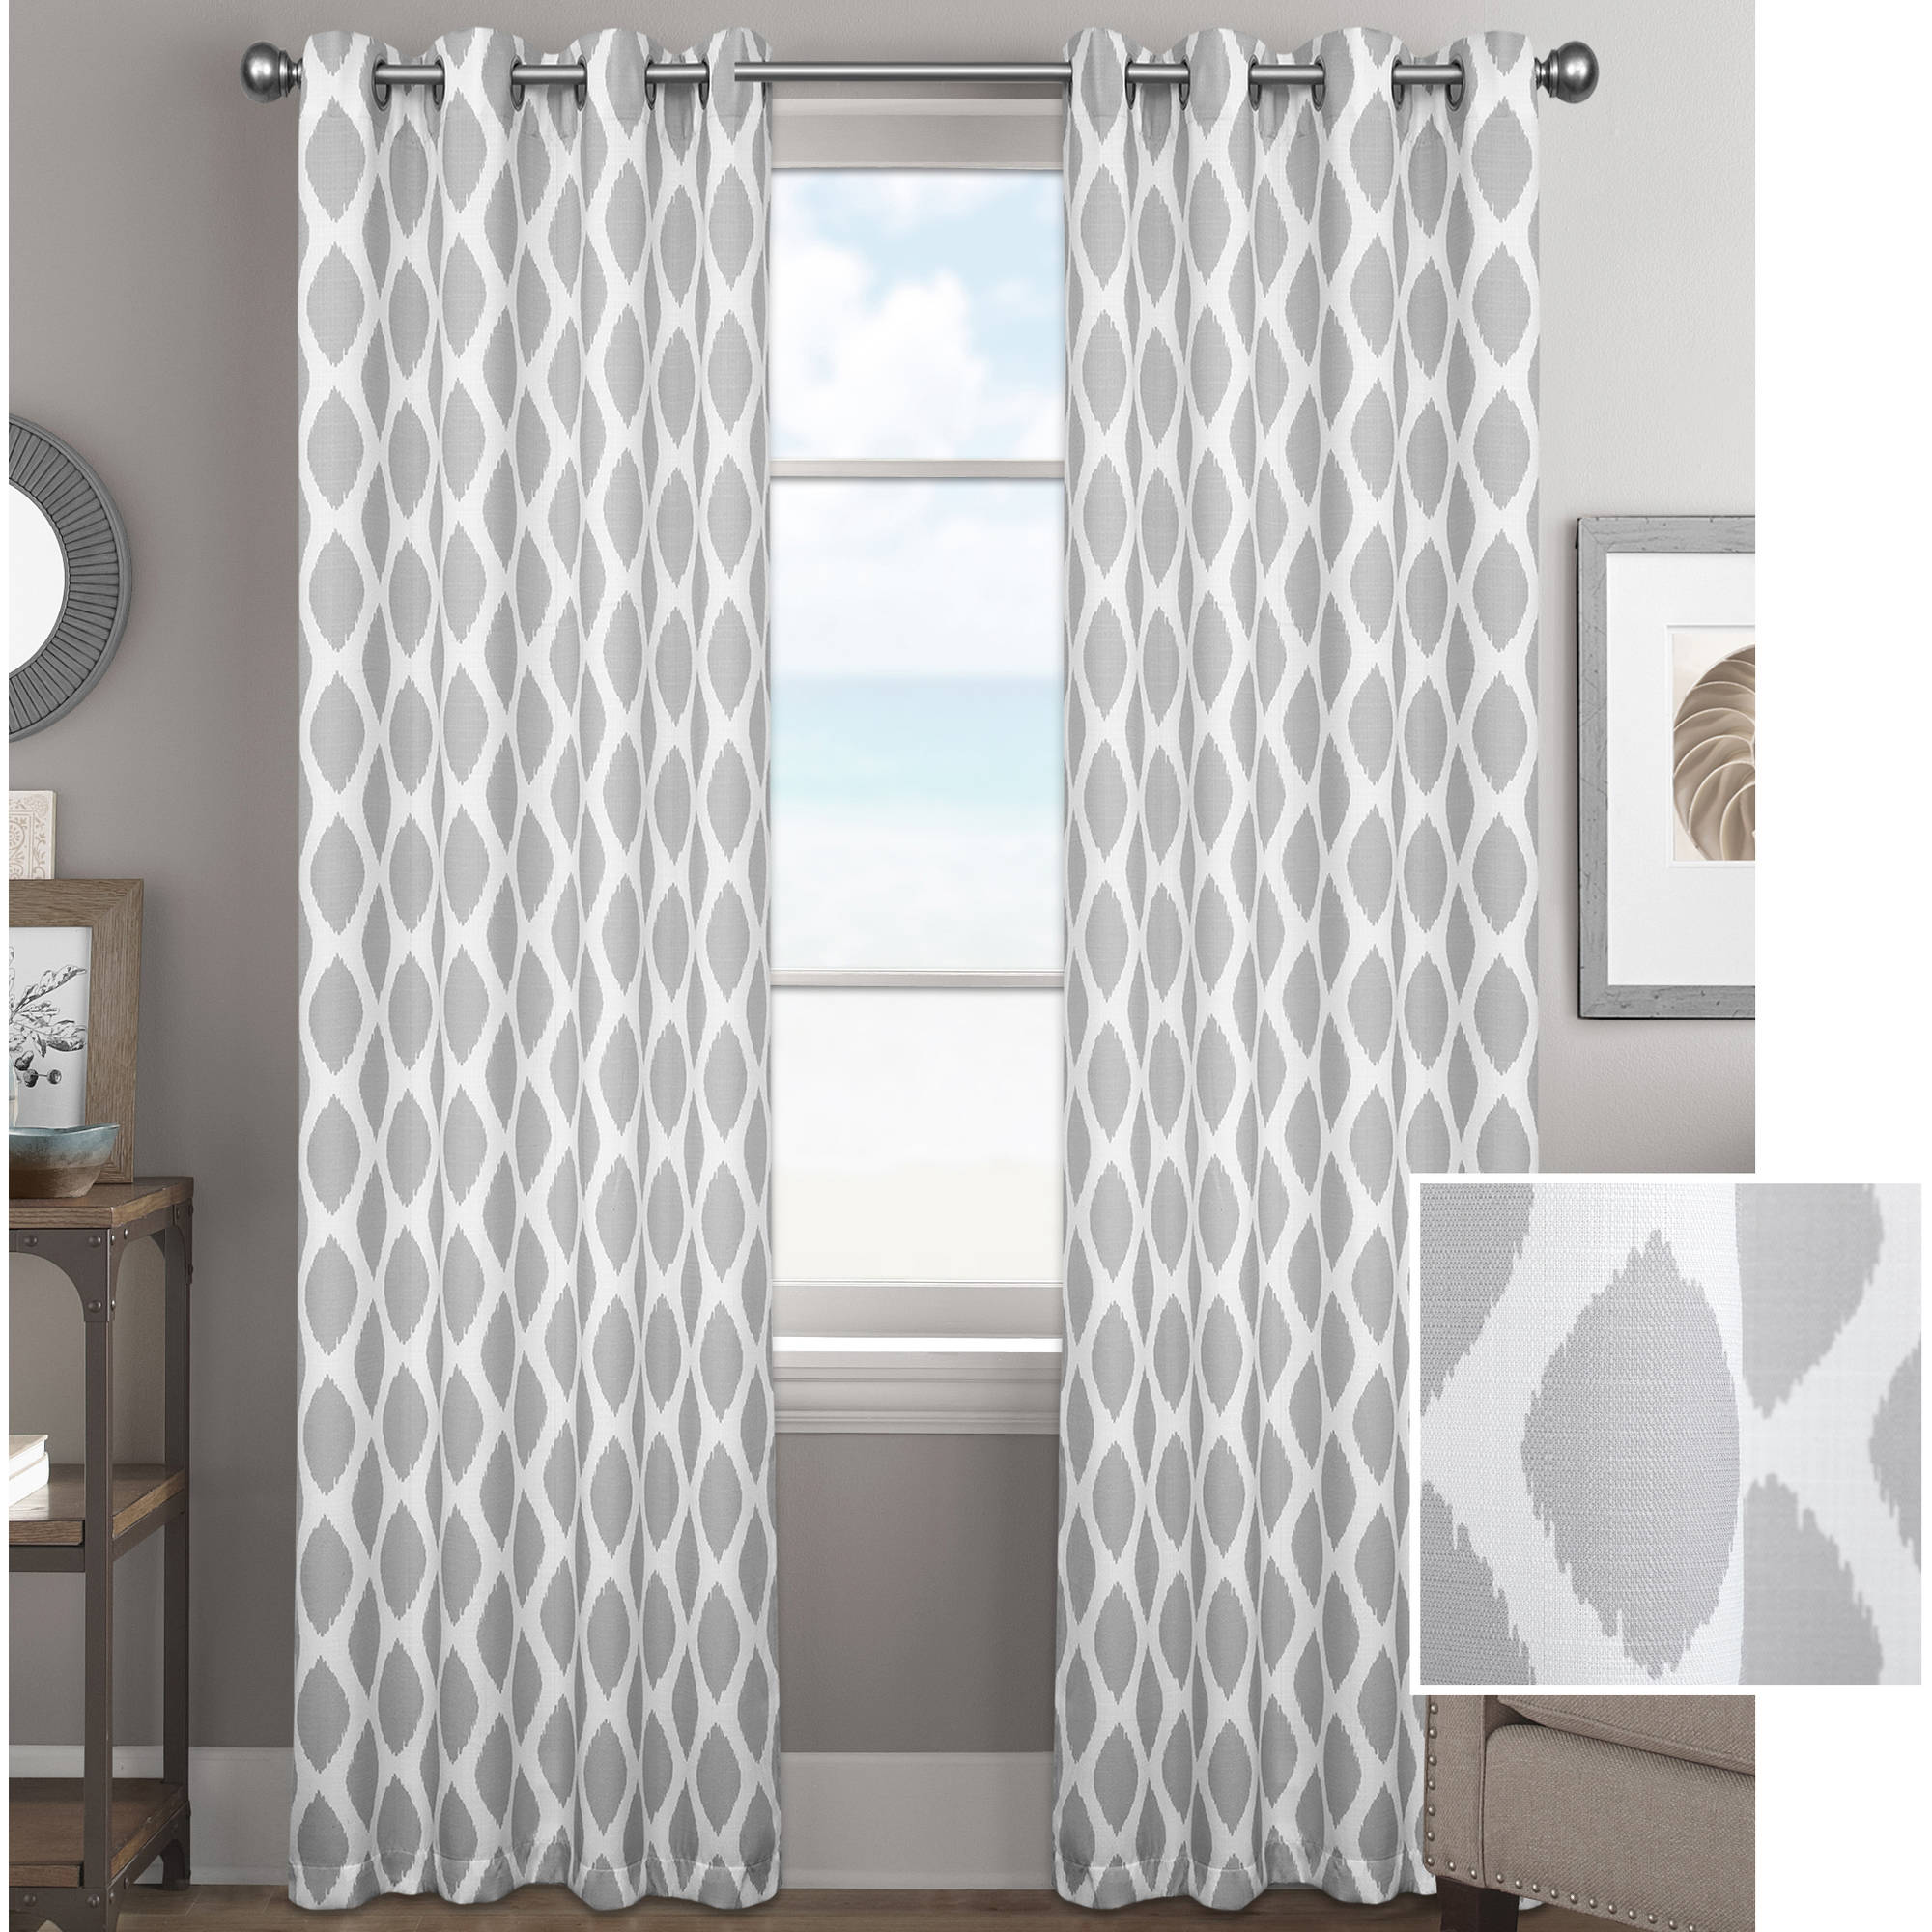 better homes and gardens ikat diamonds curtain panel with grommets better homes and gardens ikat diamonds curtain panel with grommets walmart com